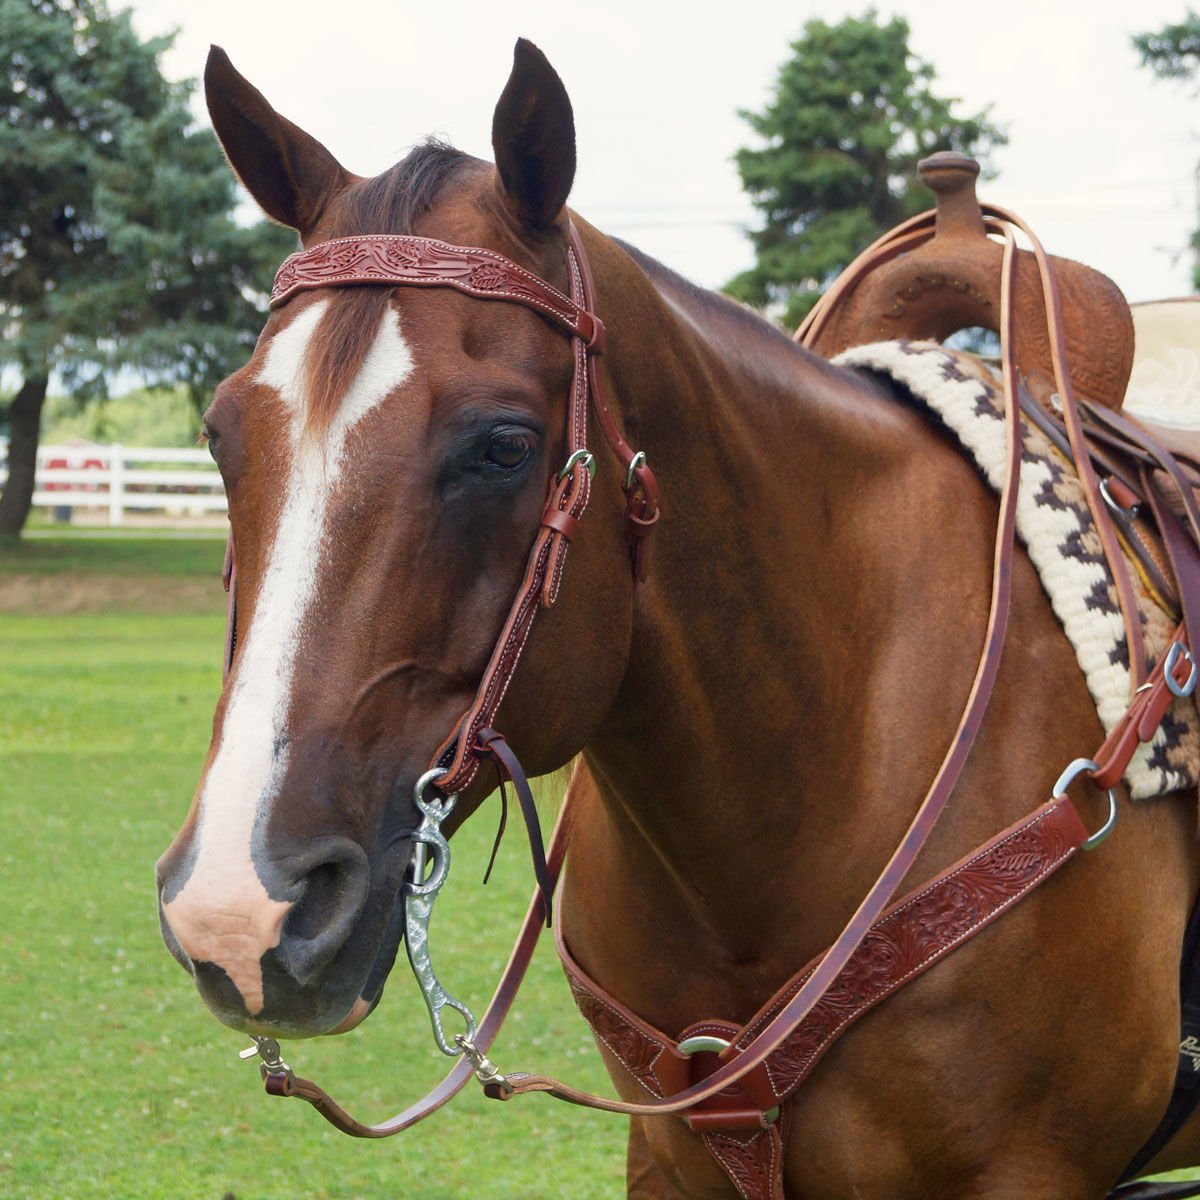 Big Dee S Tack On Twitter Check Out The Supple Sturdy Cactus Saddlery Headstalls Breastcollars And Nosebands Shop Cactus Saddlery Here Https T Co Y8xciqekiz Bigdeestack Cactussaddlery Leathertack Qualityhorsetack Https T Co Yz5y5fdw8d